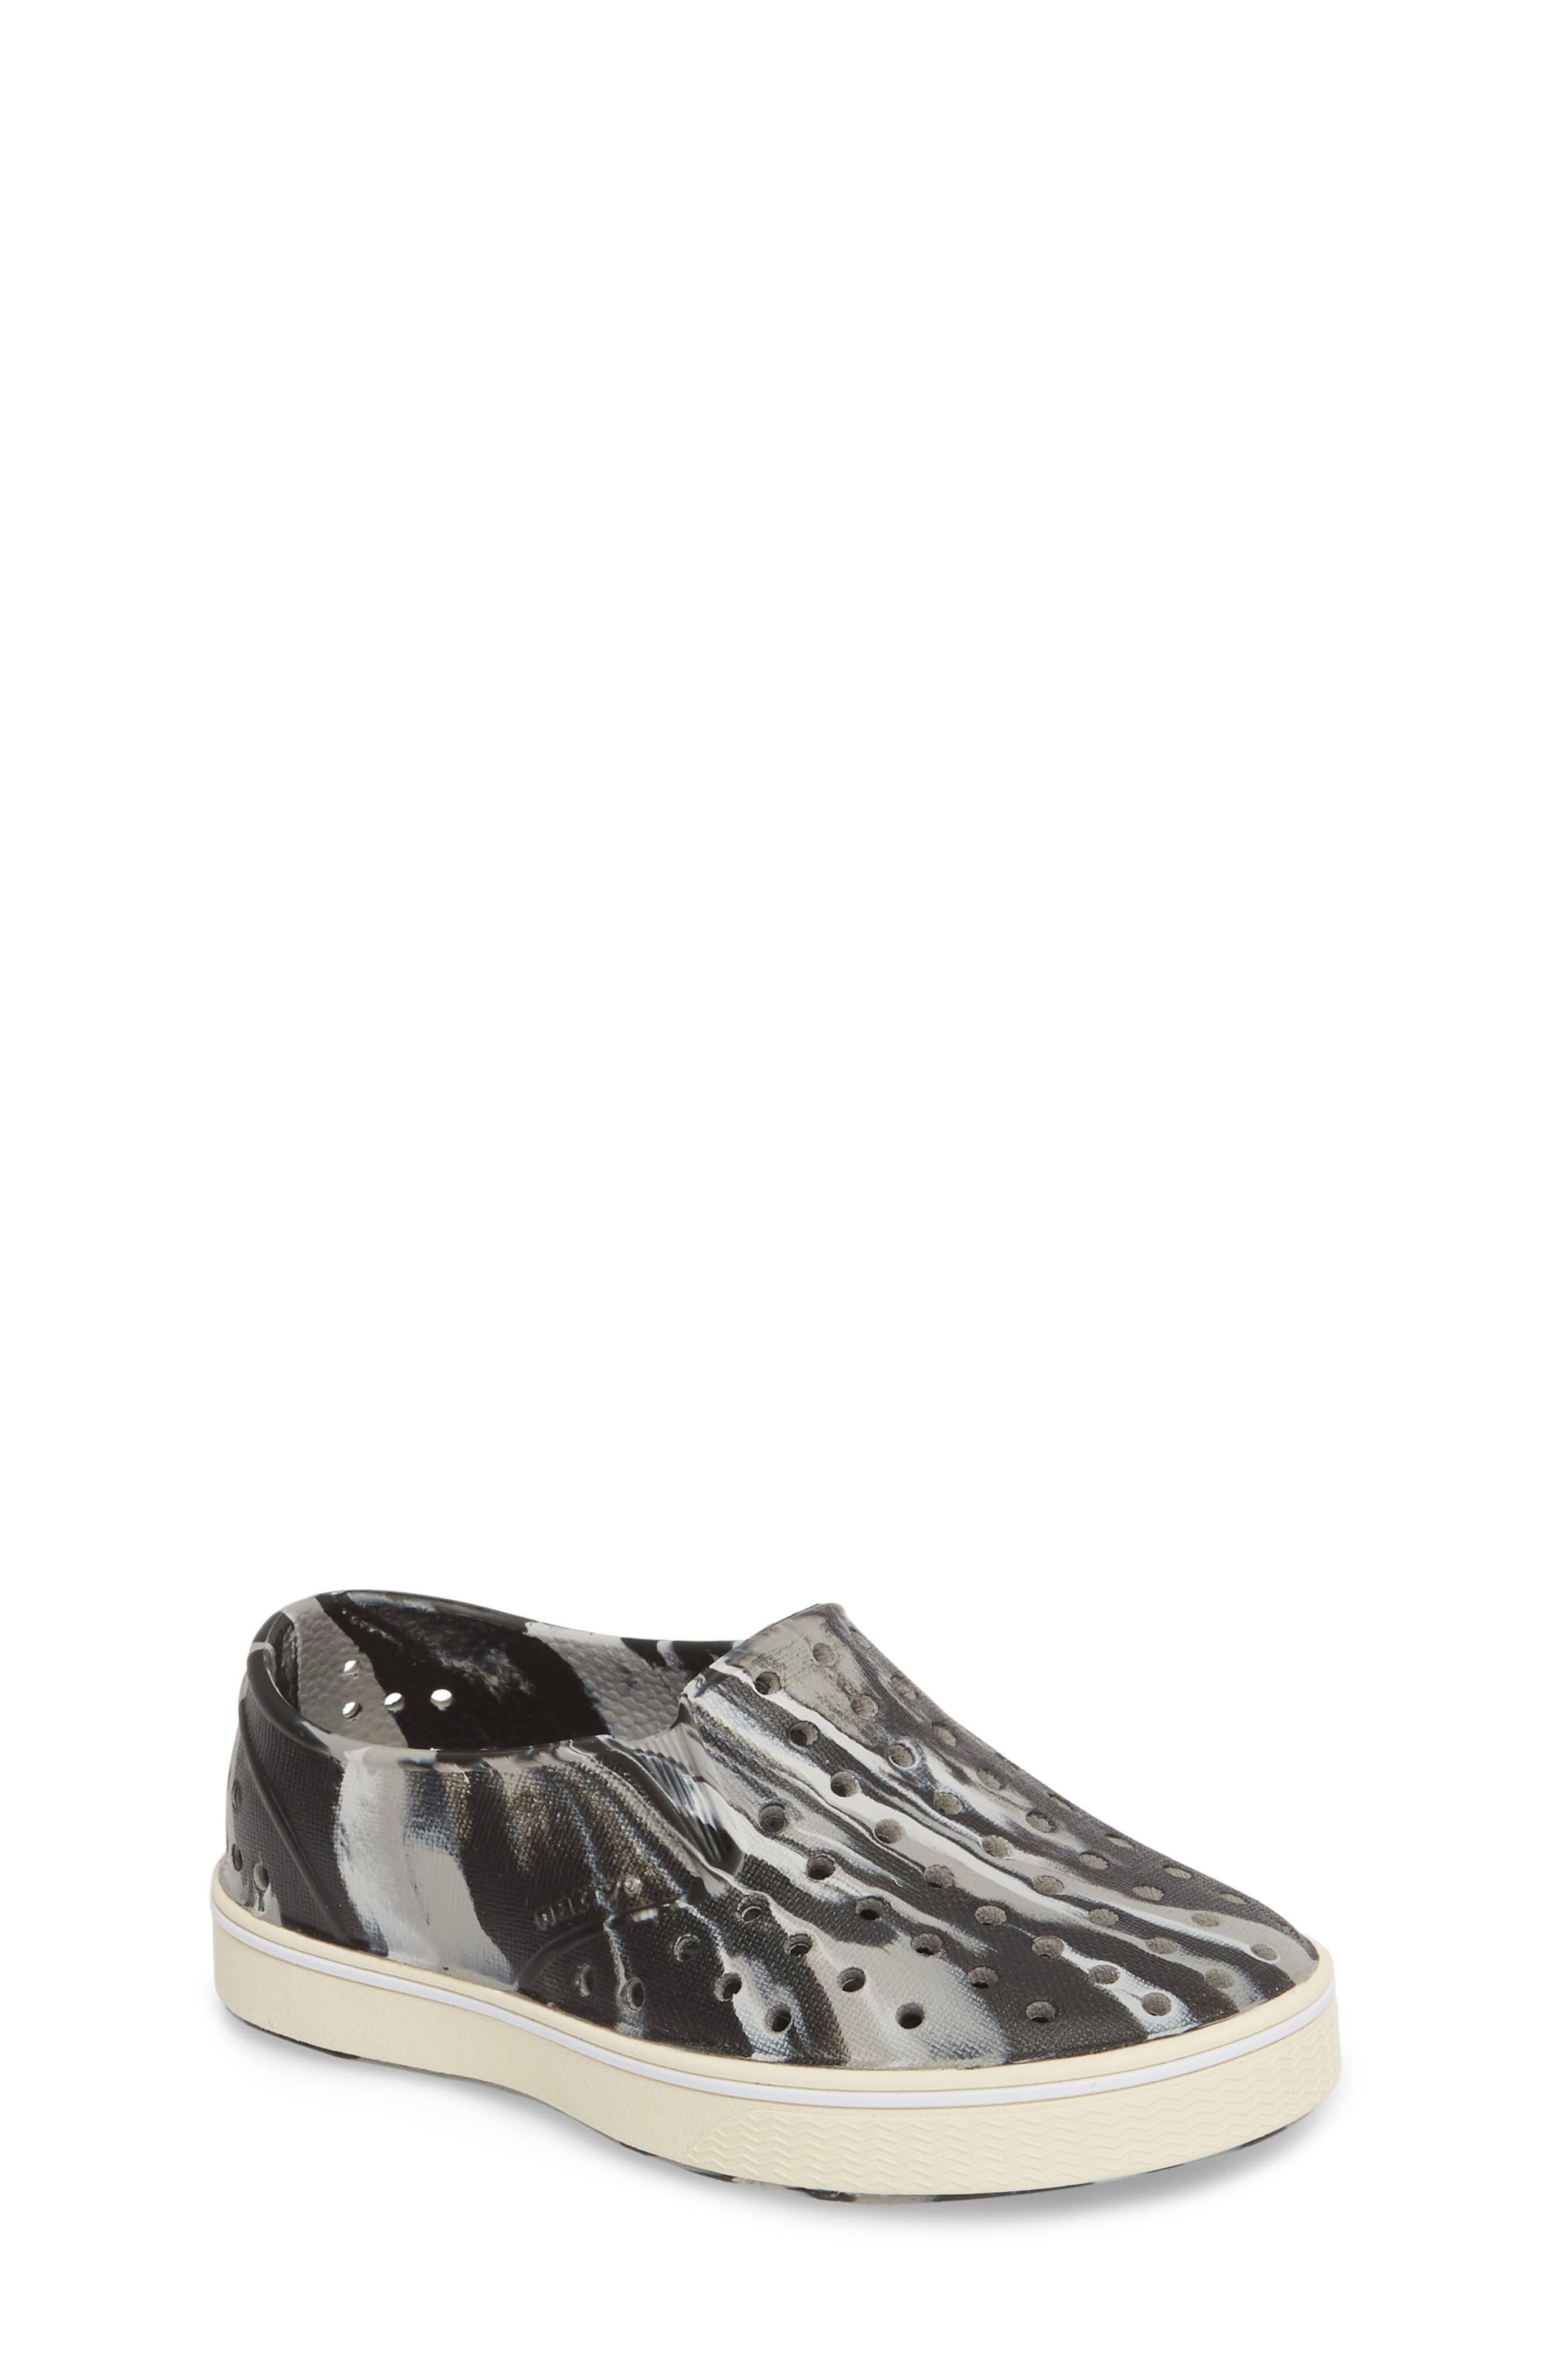 Miles Marbled Slip-On Sneaker,                             Main thumbnail 1, color,                             001